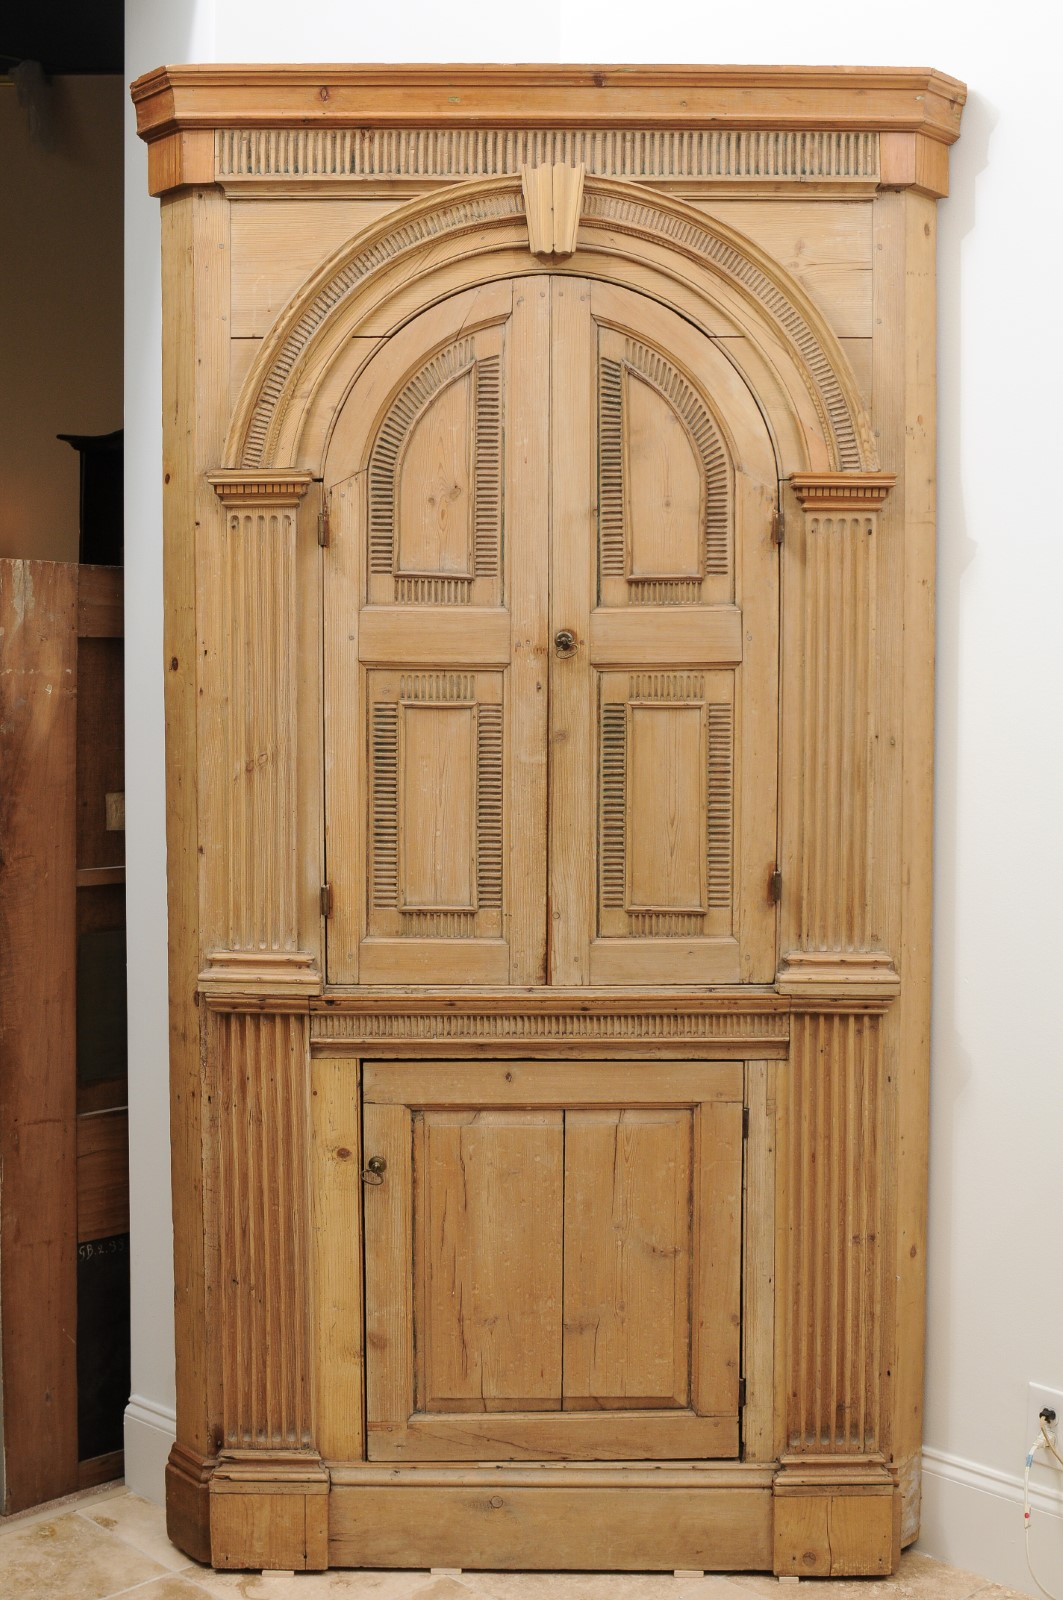 19th Century English Pine Corner Cupboard with Arched ... on Corner Sconce Shelf Cabinet id=22098